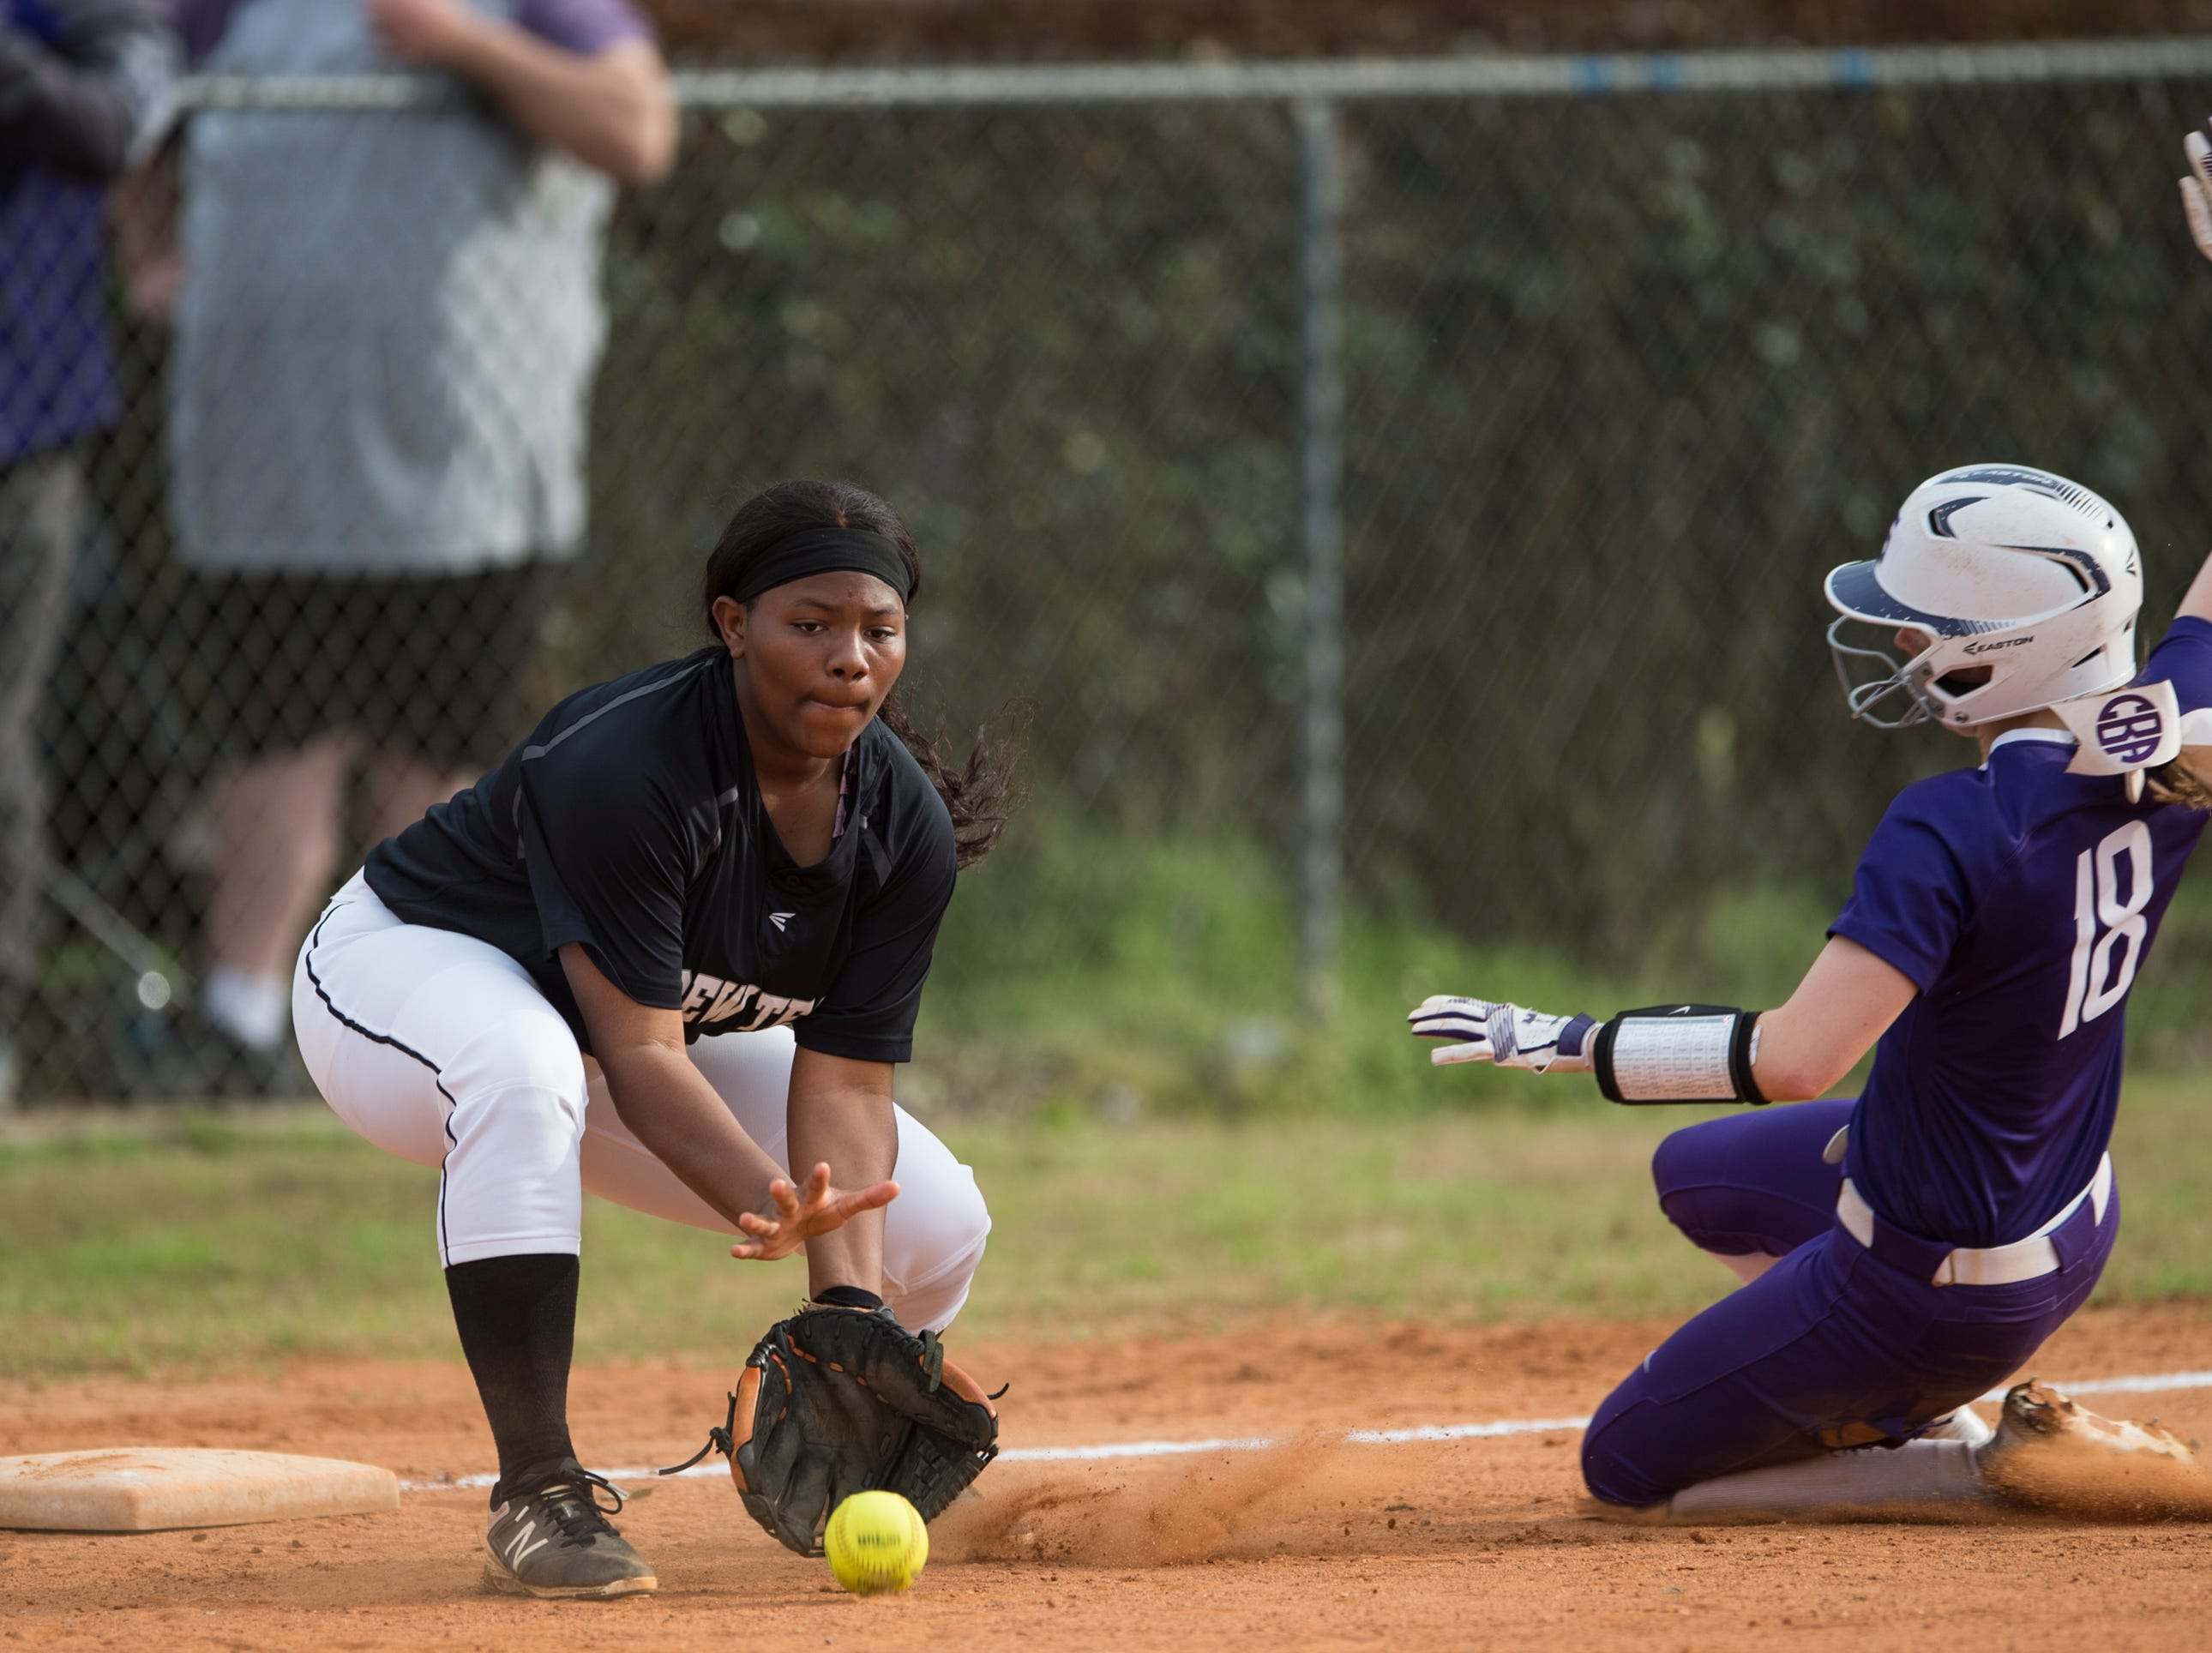 Tallassee's Chloe Baynes (18) slides safely into third base past Brew Tech's Janeen White (1) at Thompson Park in Montgomery, Ala., on Thursday, March 14, 2019. Tallassee defeated Brew Tech 7-0.